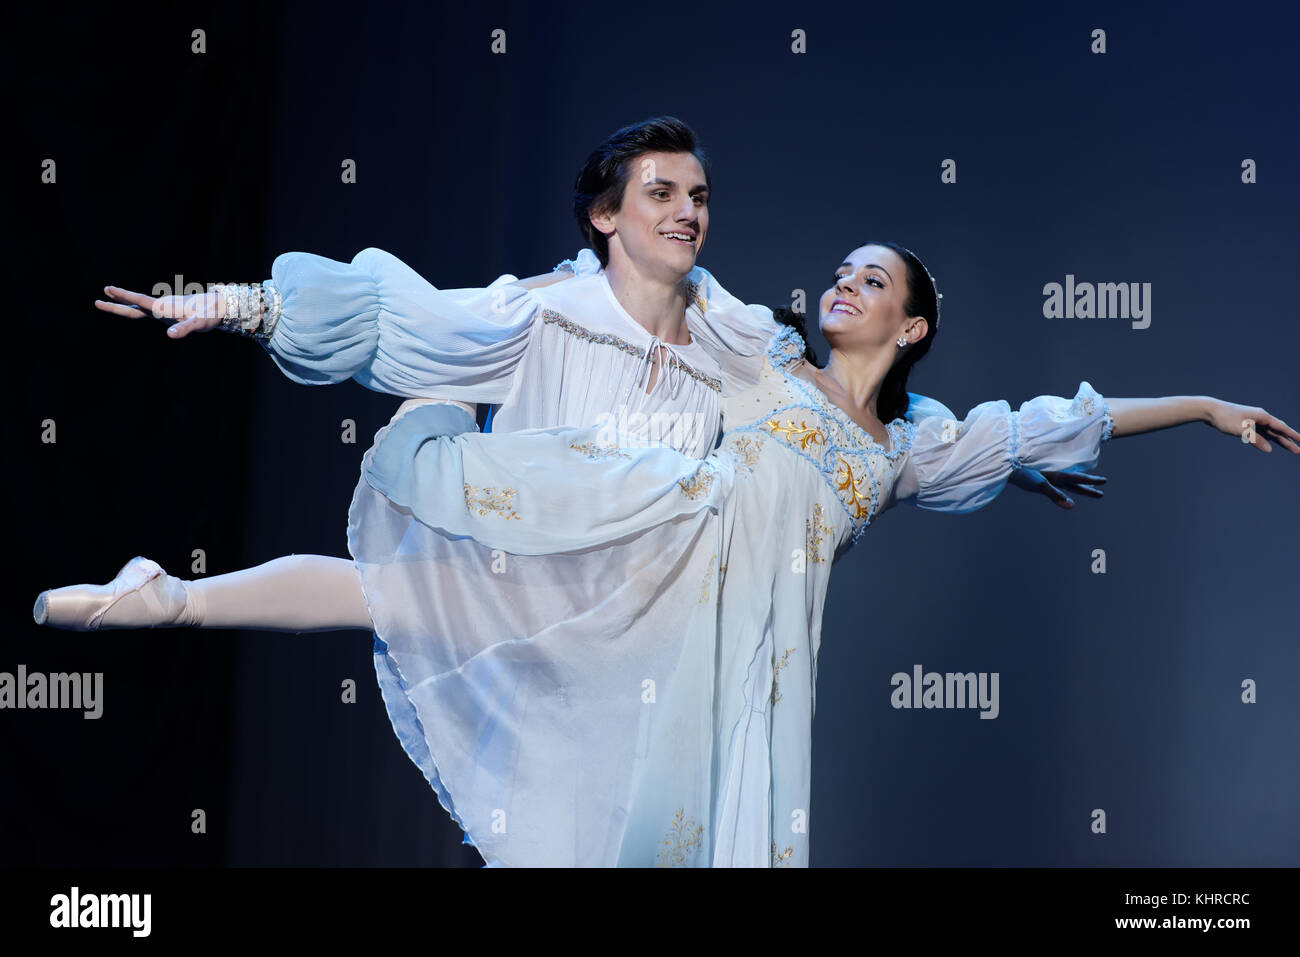 St. Petersburg, Russia - November 16, 2017: Soloists of Novosibirsk Opera and Ballet Theater Anna Germizeeva and - Stock Image